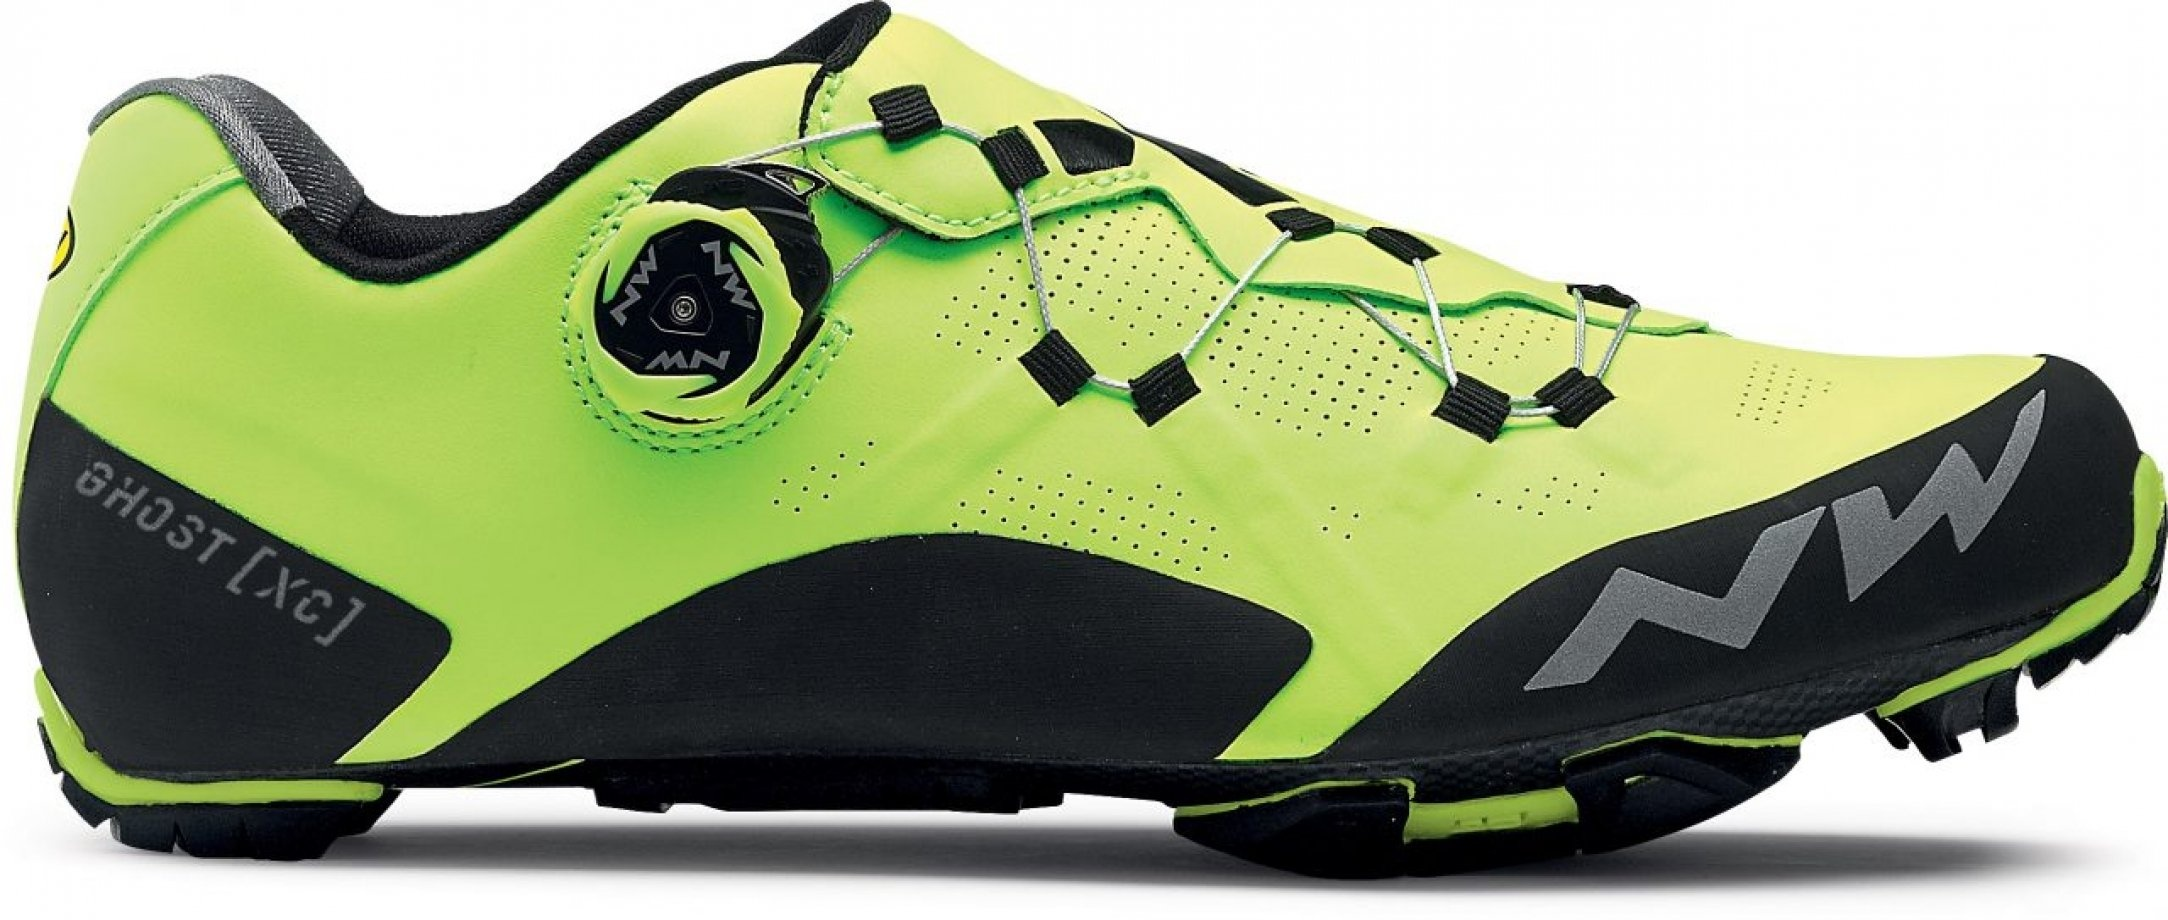 NorthWave Ghost XC - Fluo